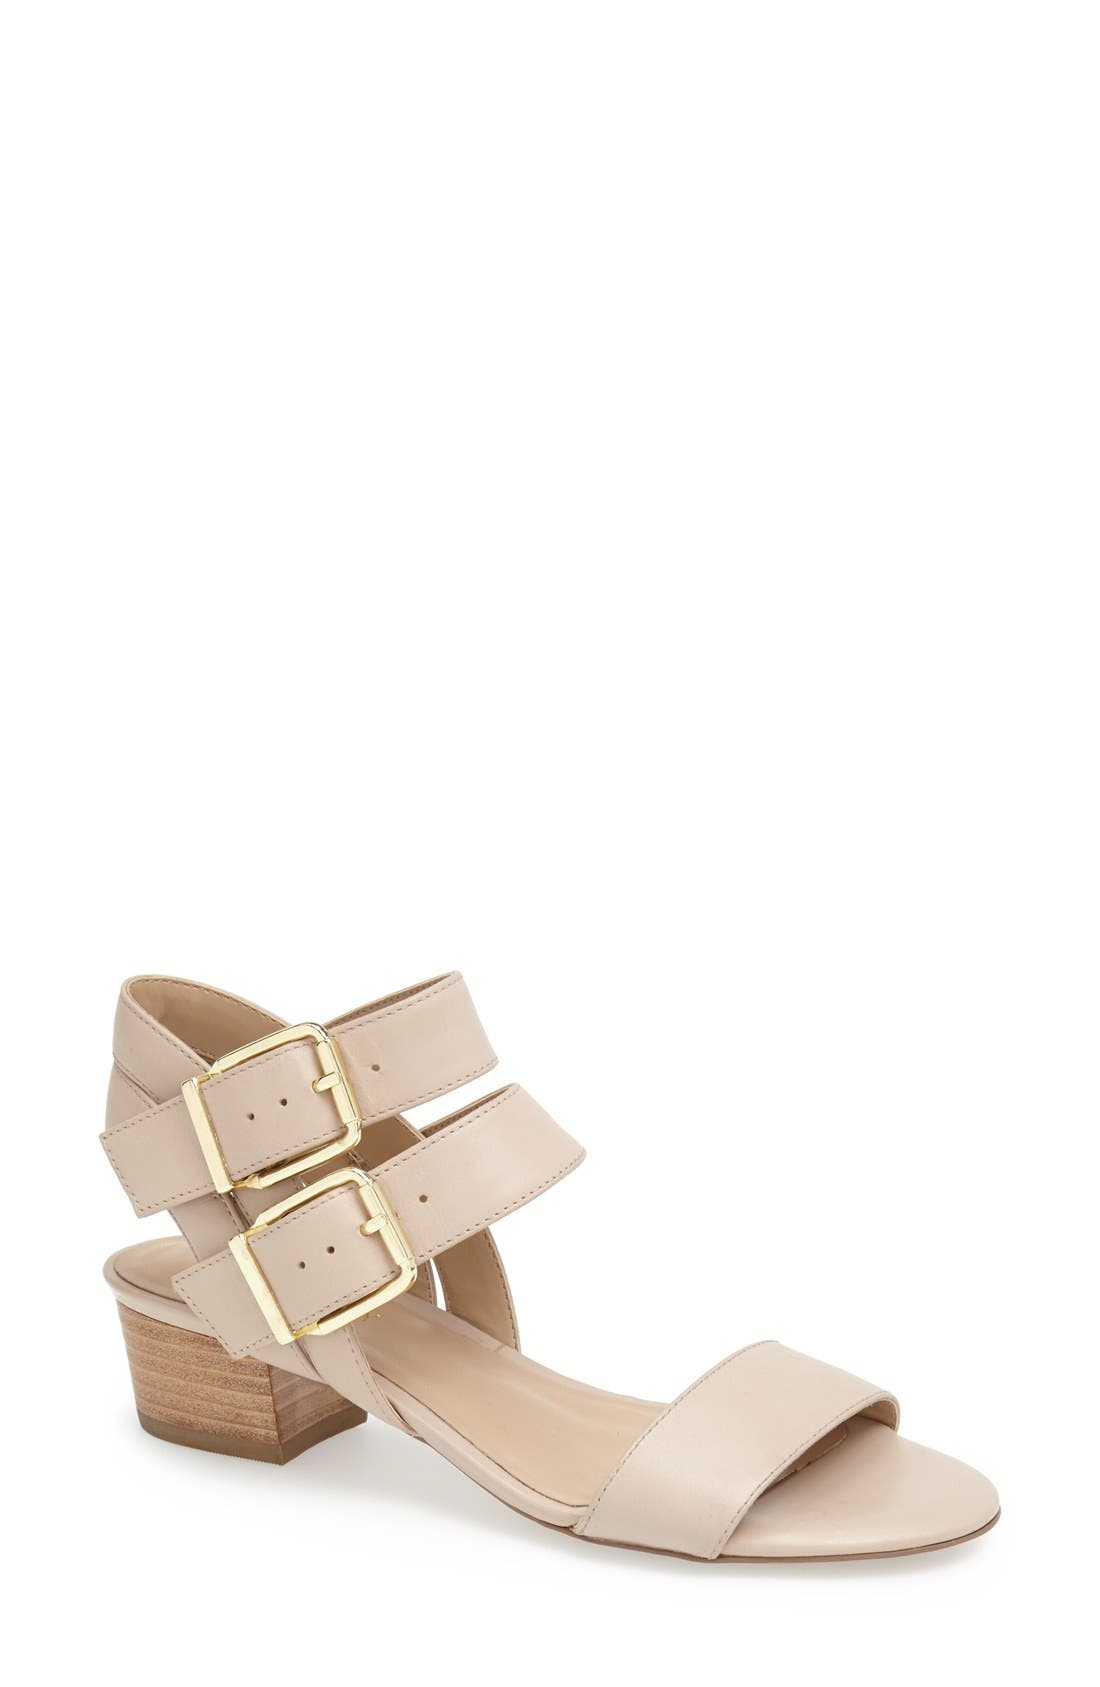 Alternate Image 1 Selected - Sole Society 'Christine' Sandal (Women)